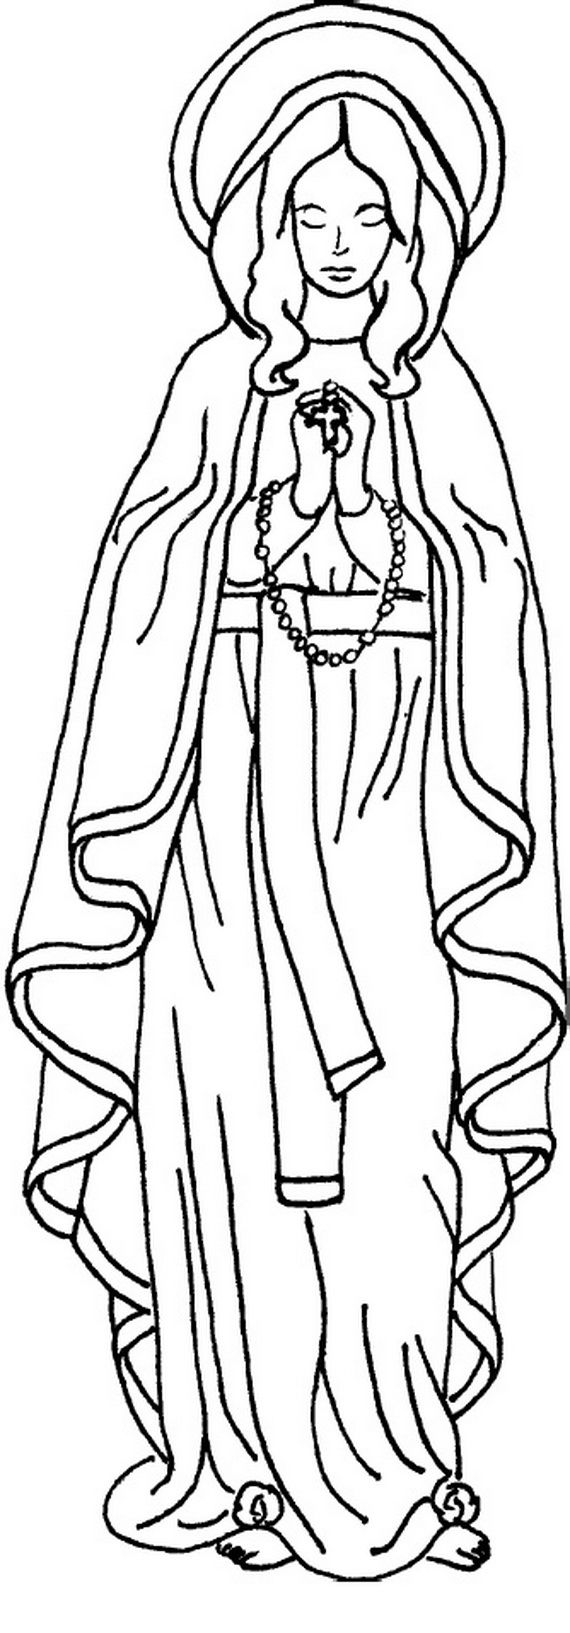 Coloring Pages Mary And Jesus Coloring Pages 1000 images about vbs on pinterest coloring colouring pages and virgin mary